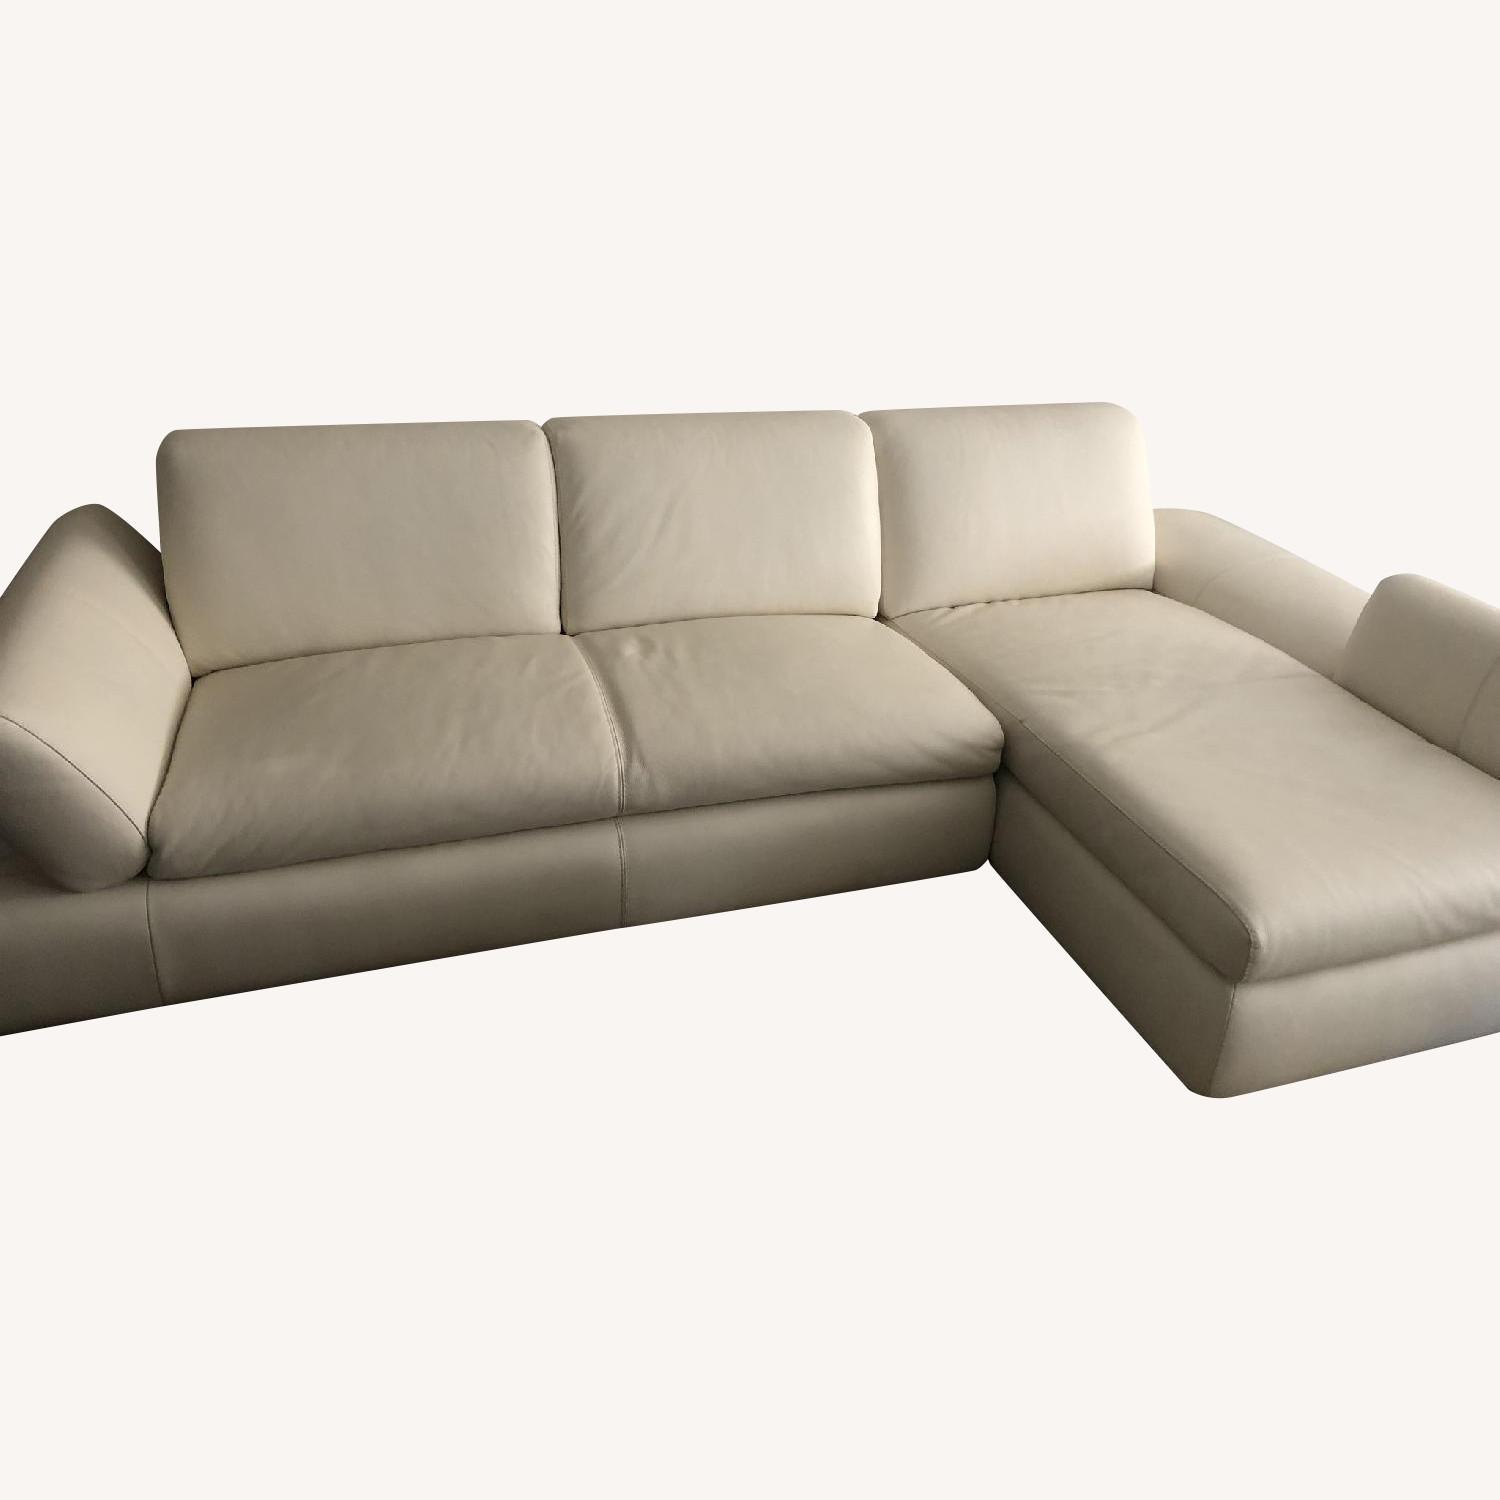 Nicoletti Home White Leather 2-Piece Sectional Sofa - image-0